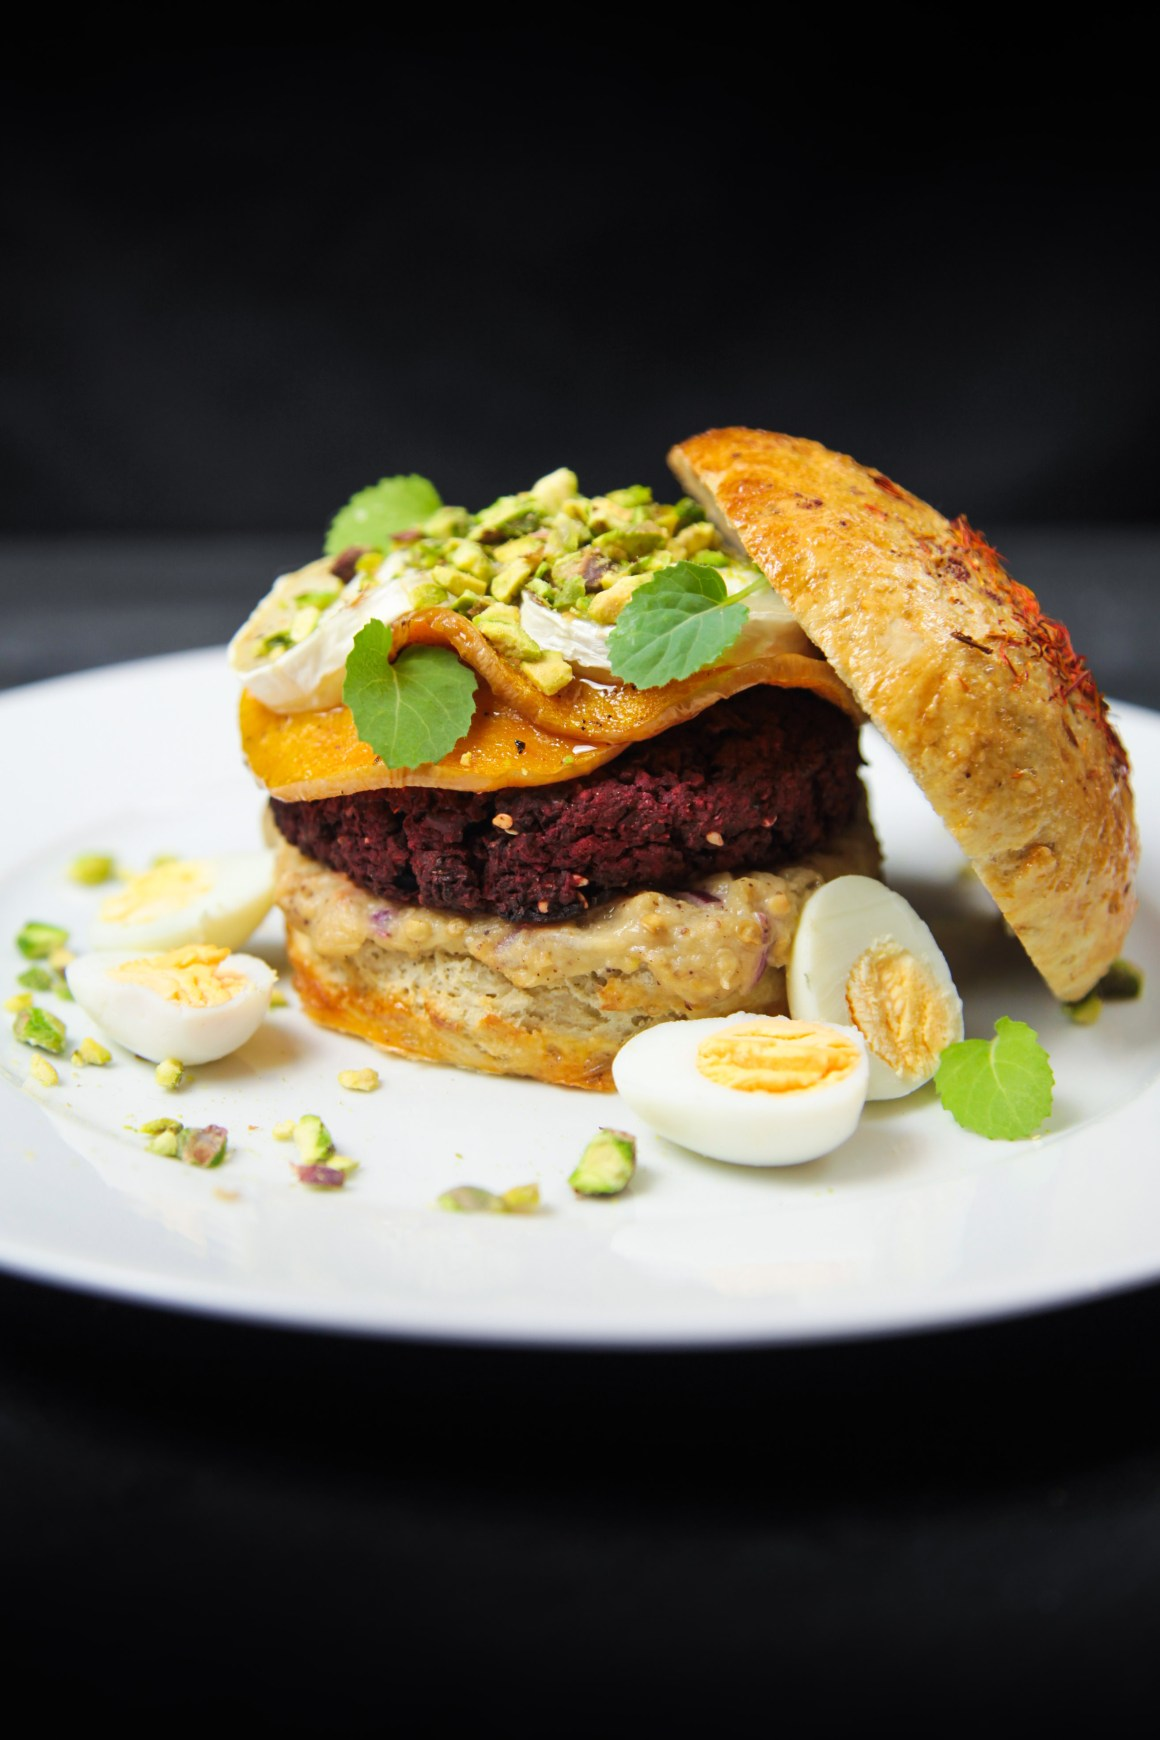 Delicious Beet Falafel Burgers with Baba Ganoush and Cardamom Butternut Squash